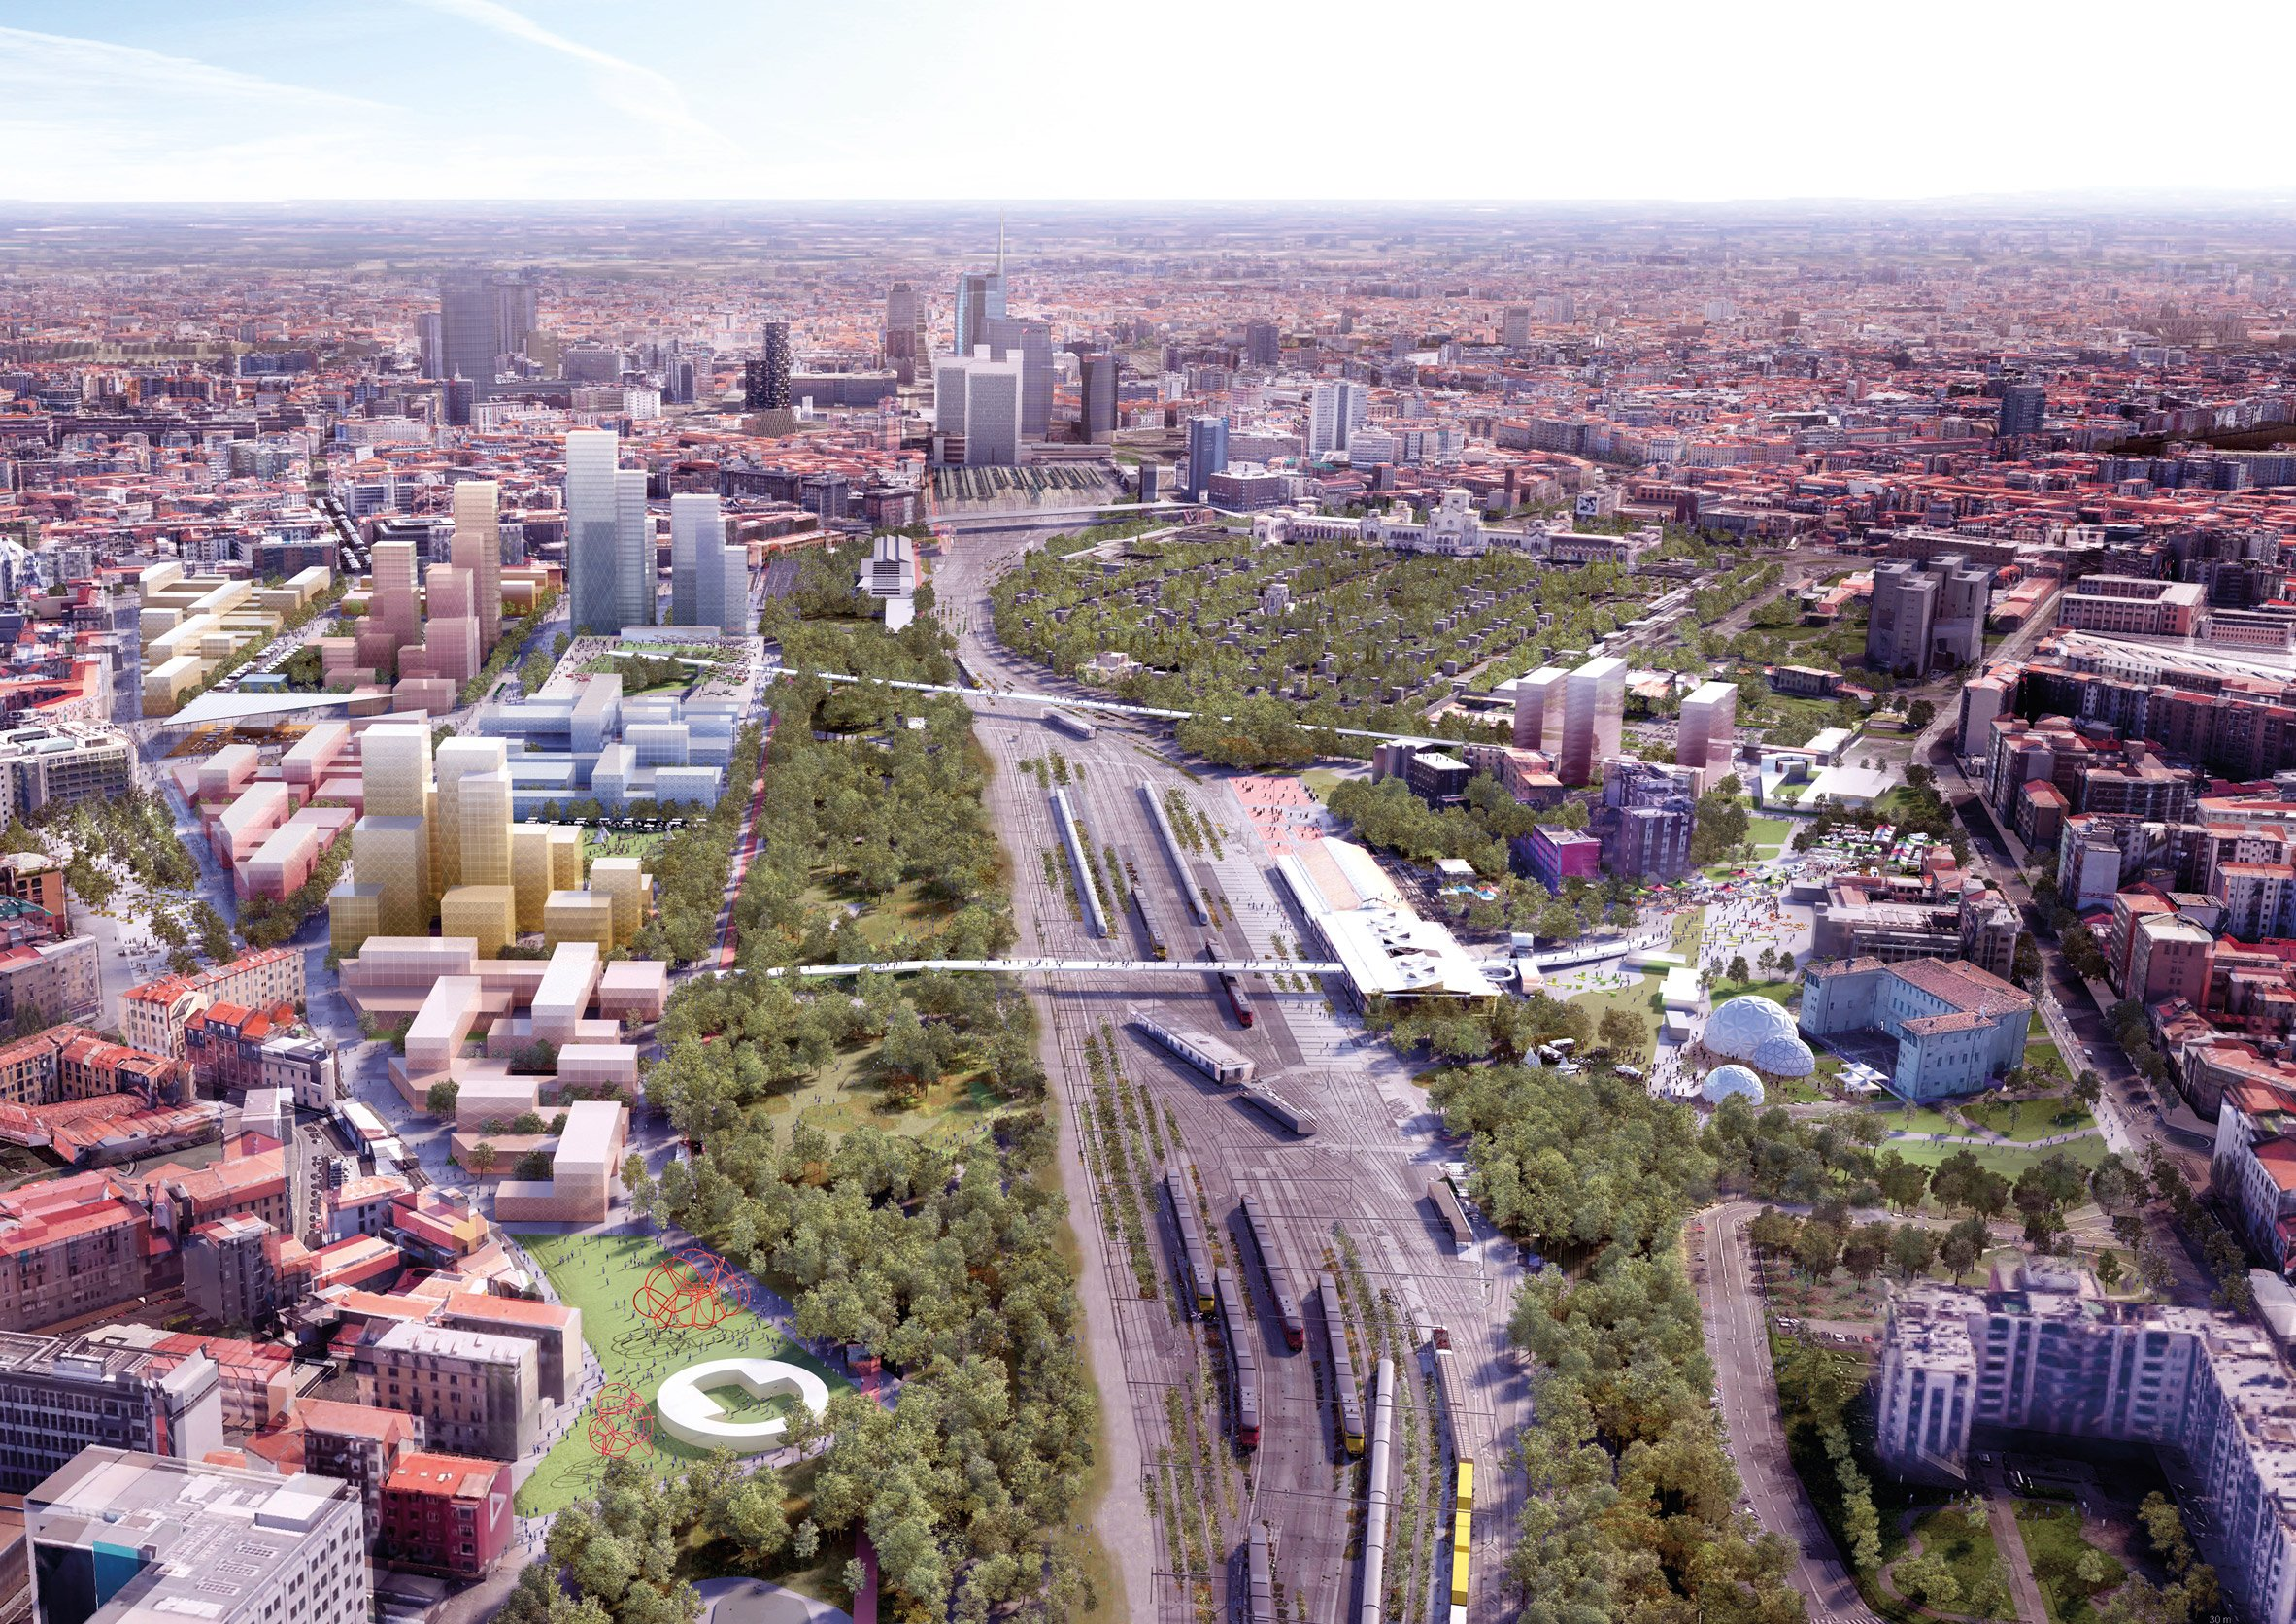 The Scalo Farini goods yard in the Agenti Climatici masterplan for Milan by OMA and Laboratorio Permanente